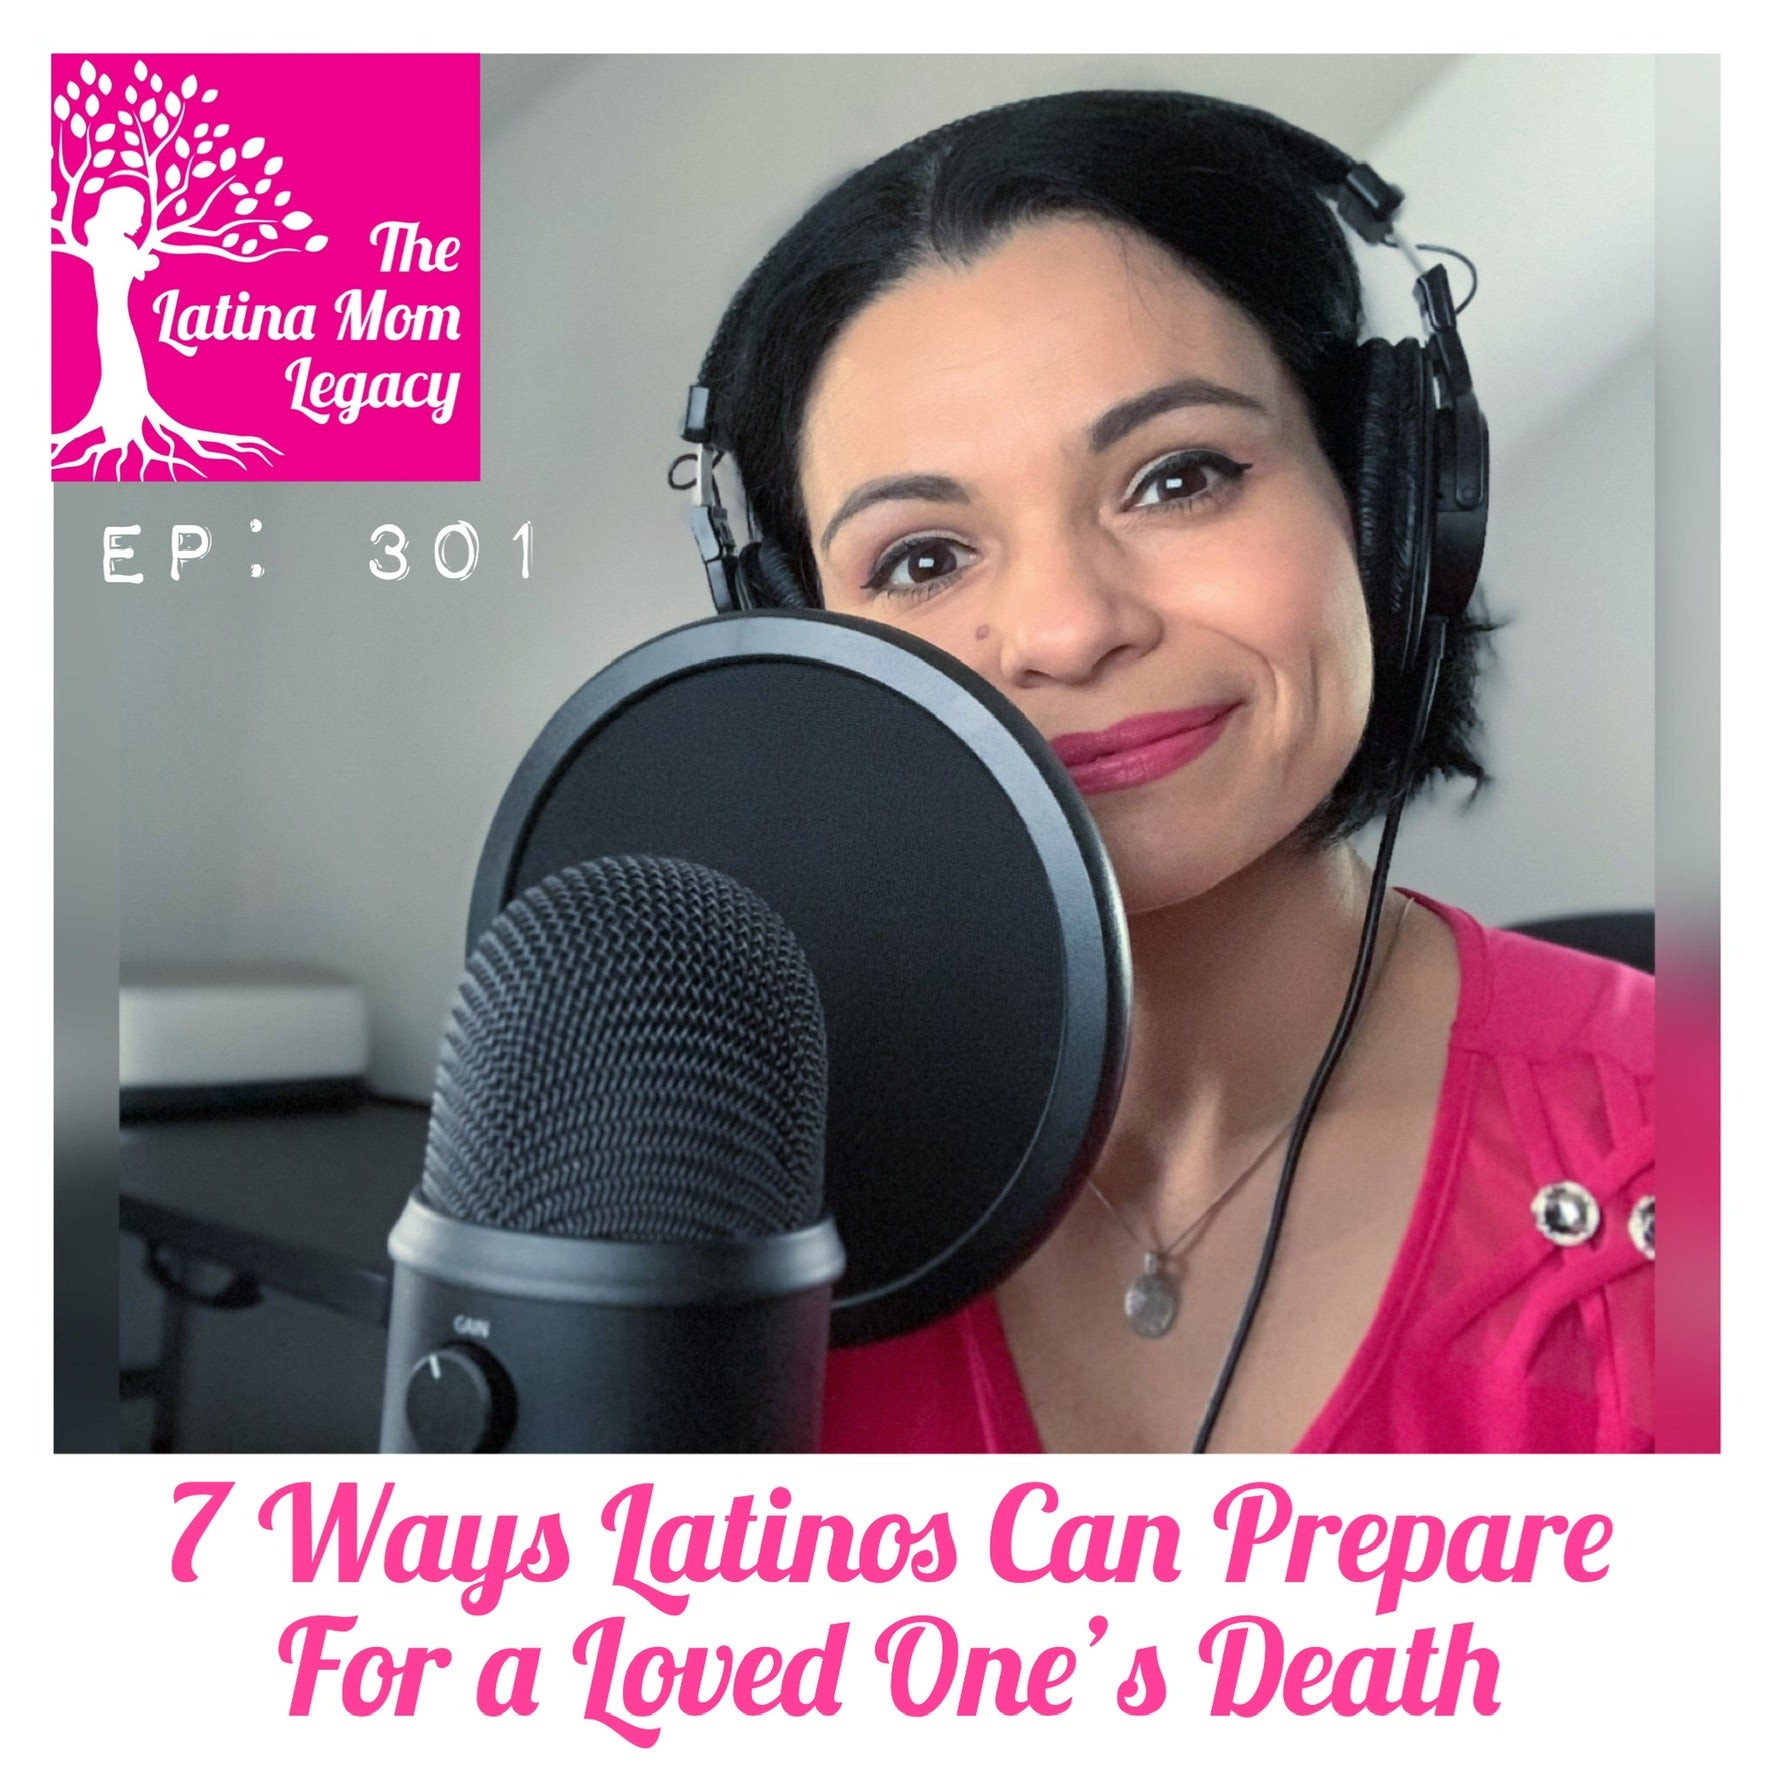 301 - 7 Ways Latinos Can Prepare For Losing a Loved One or Death